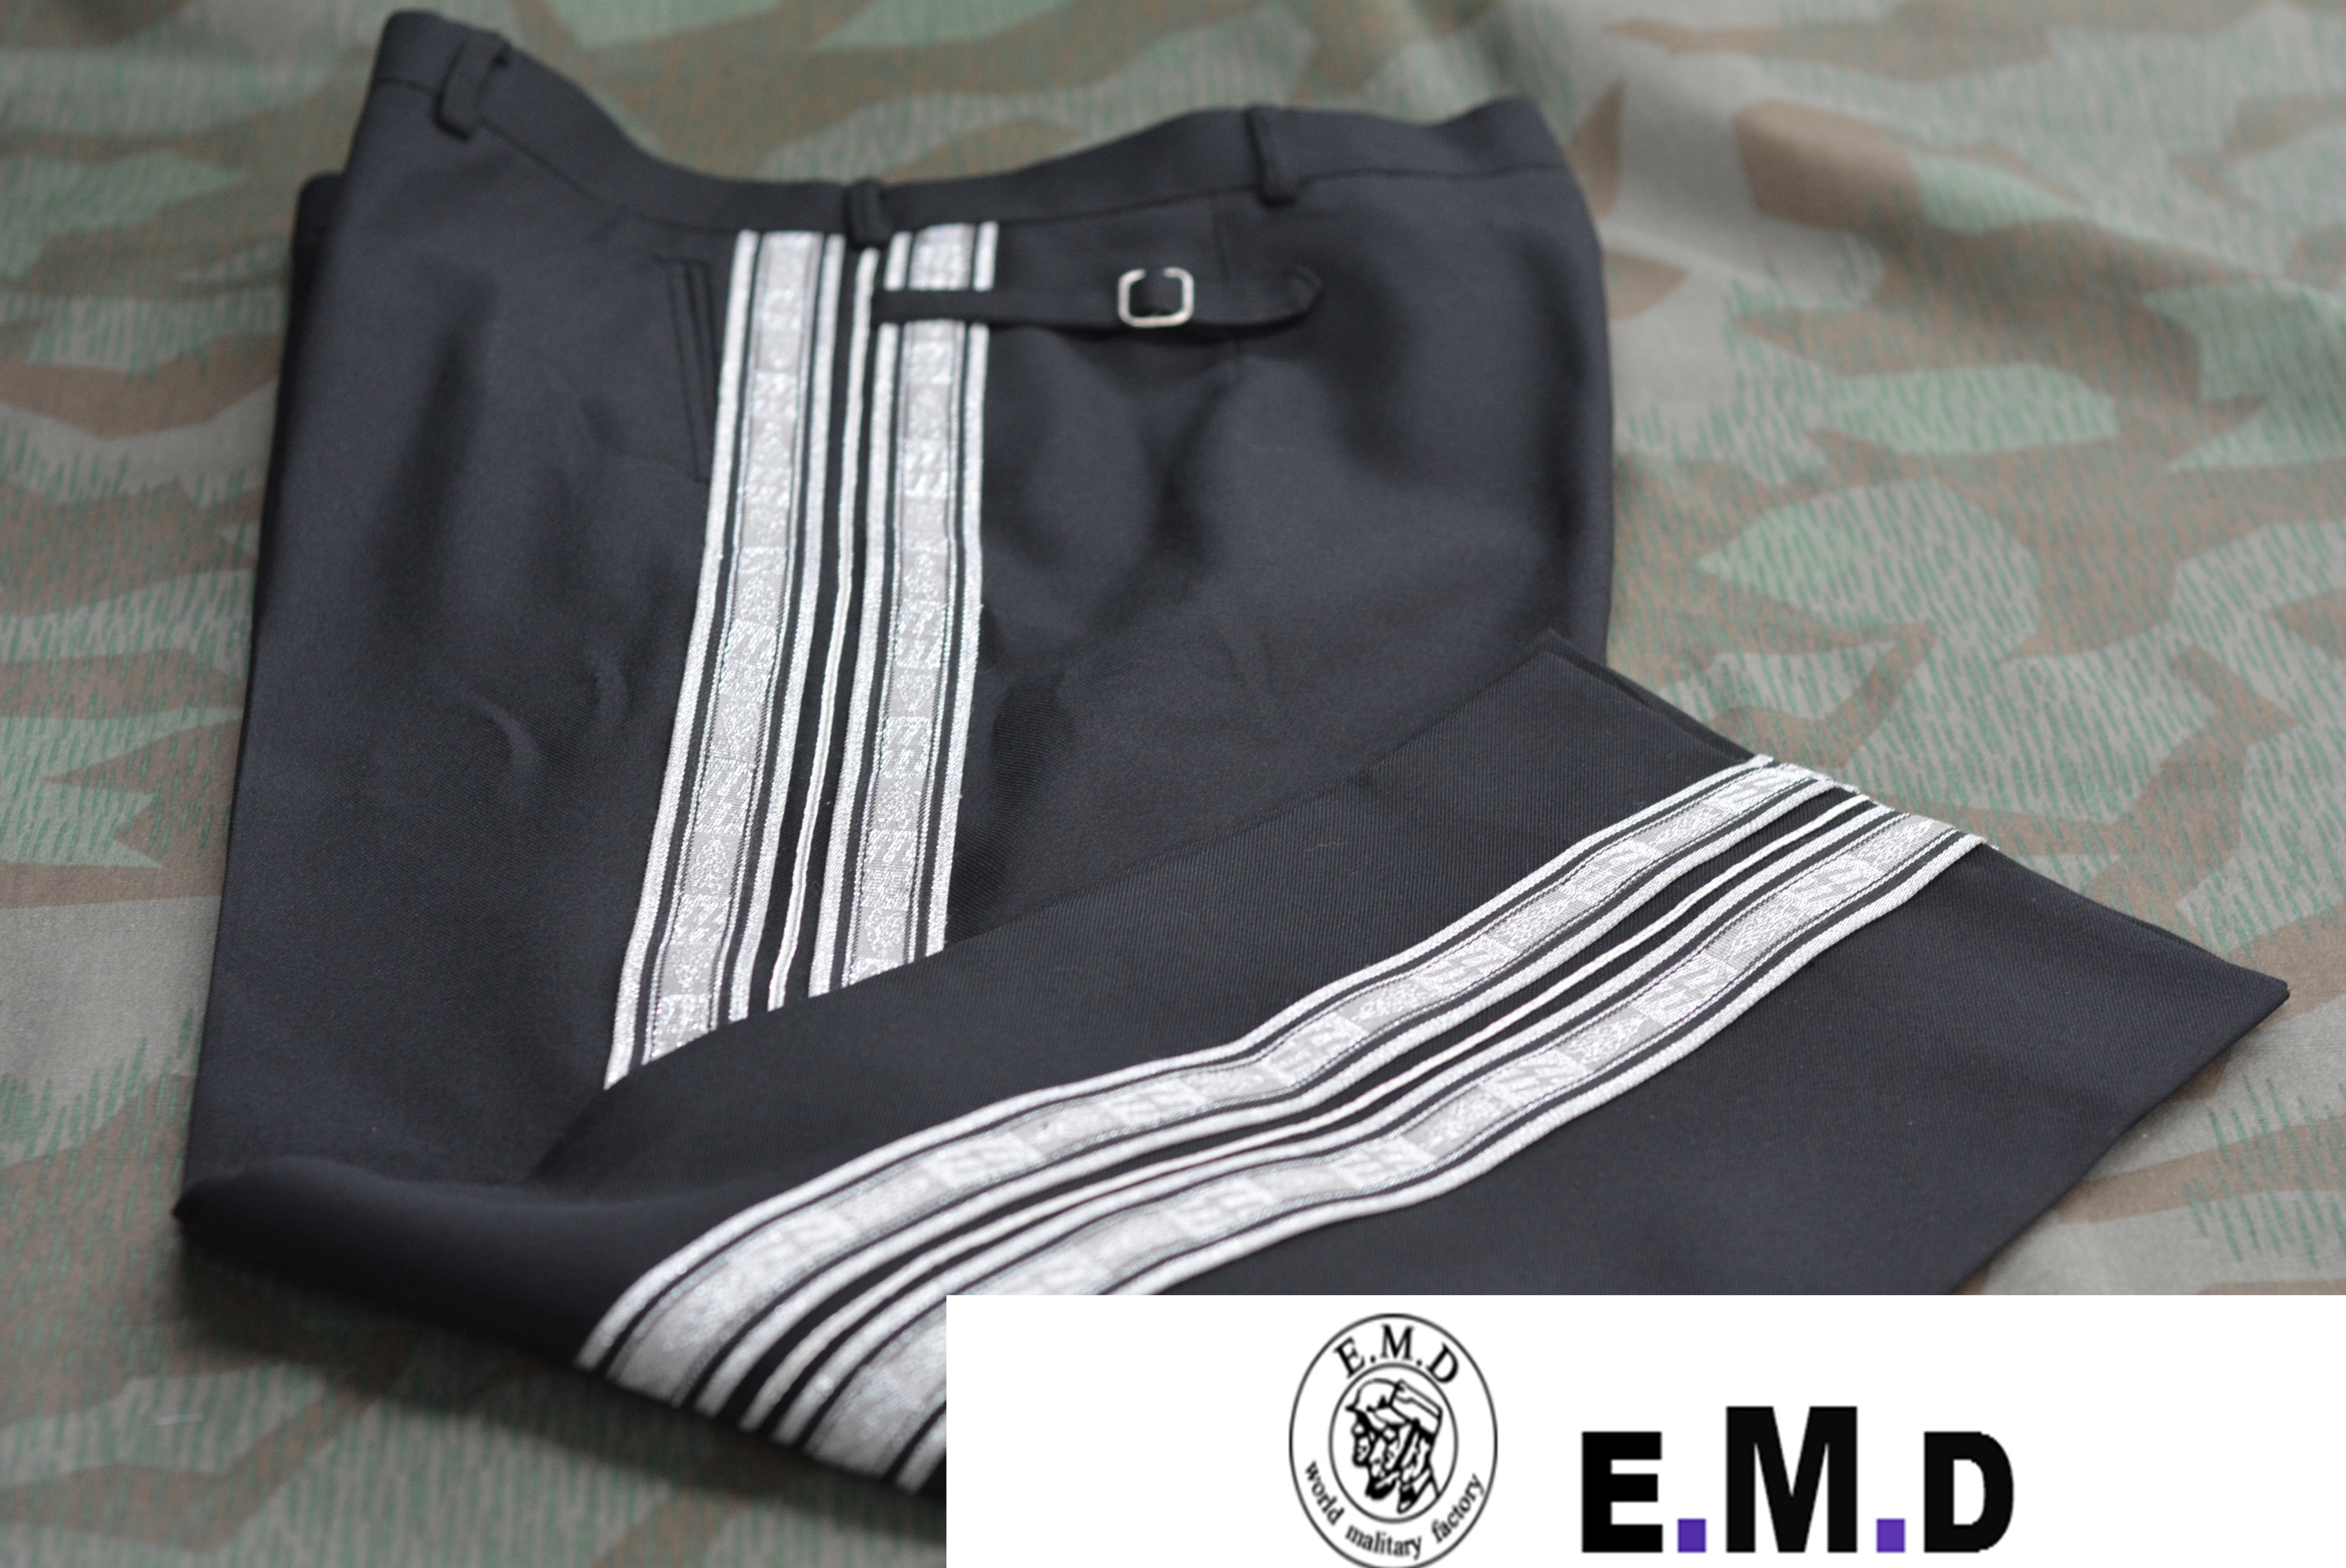 EMD WW2 German, Dress pants, Officer/Twill Wool